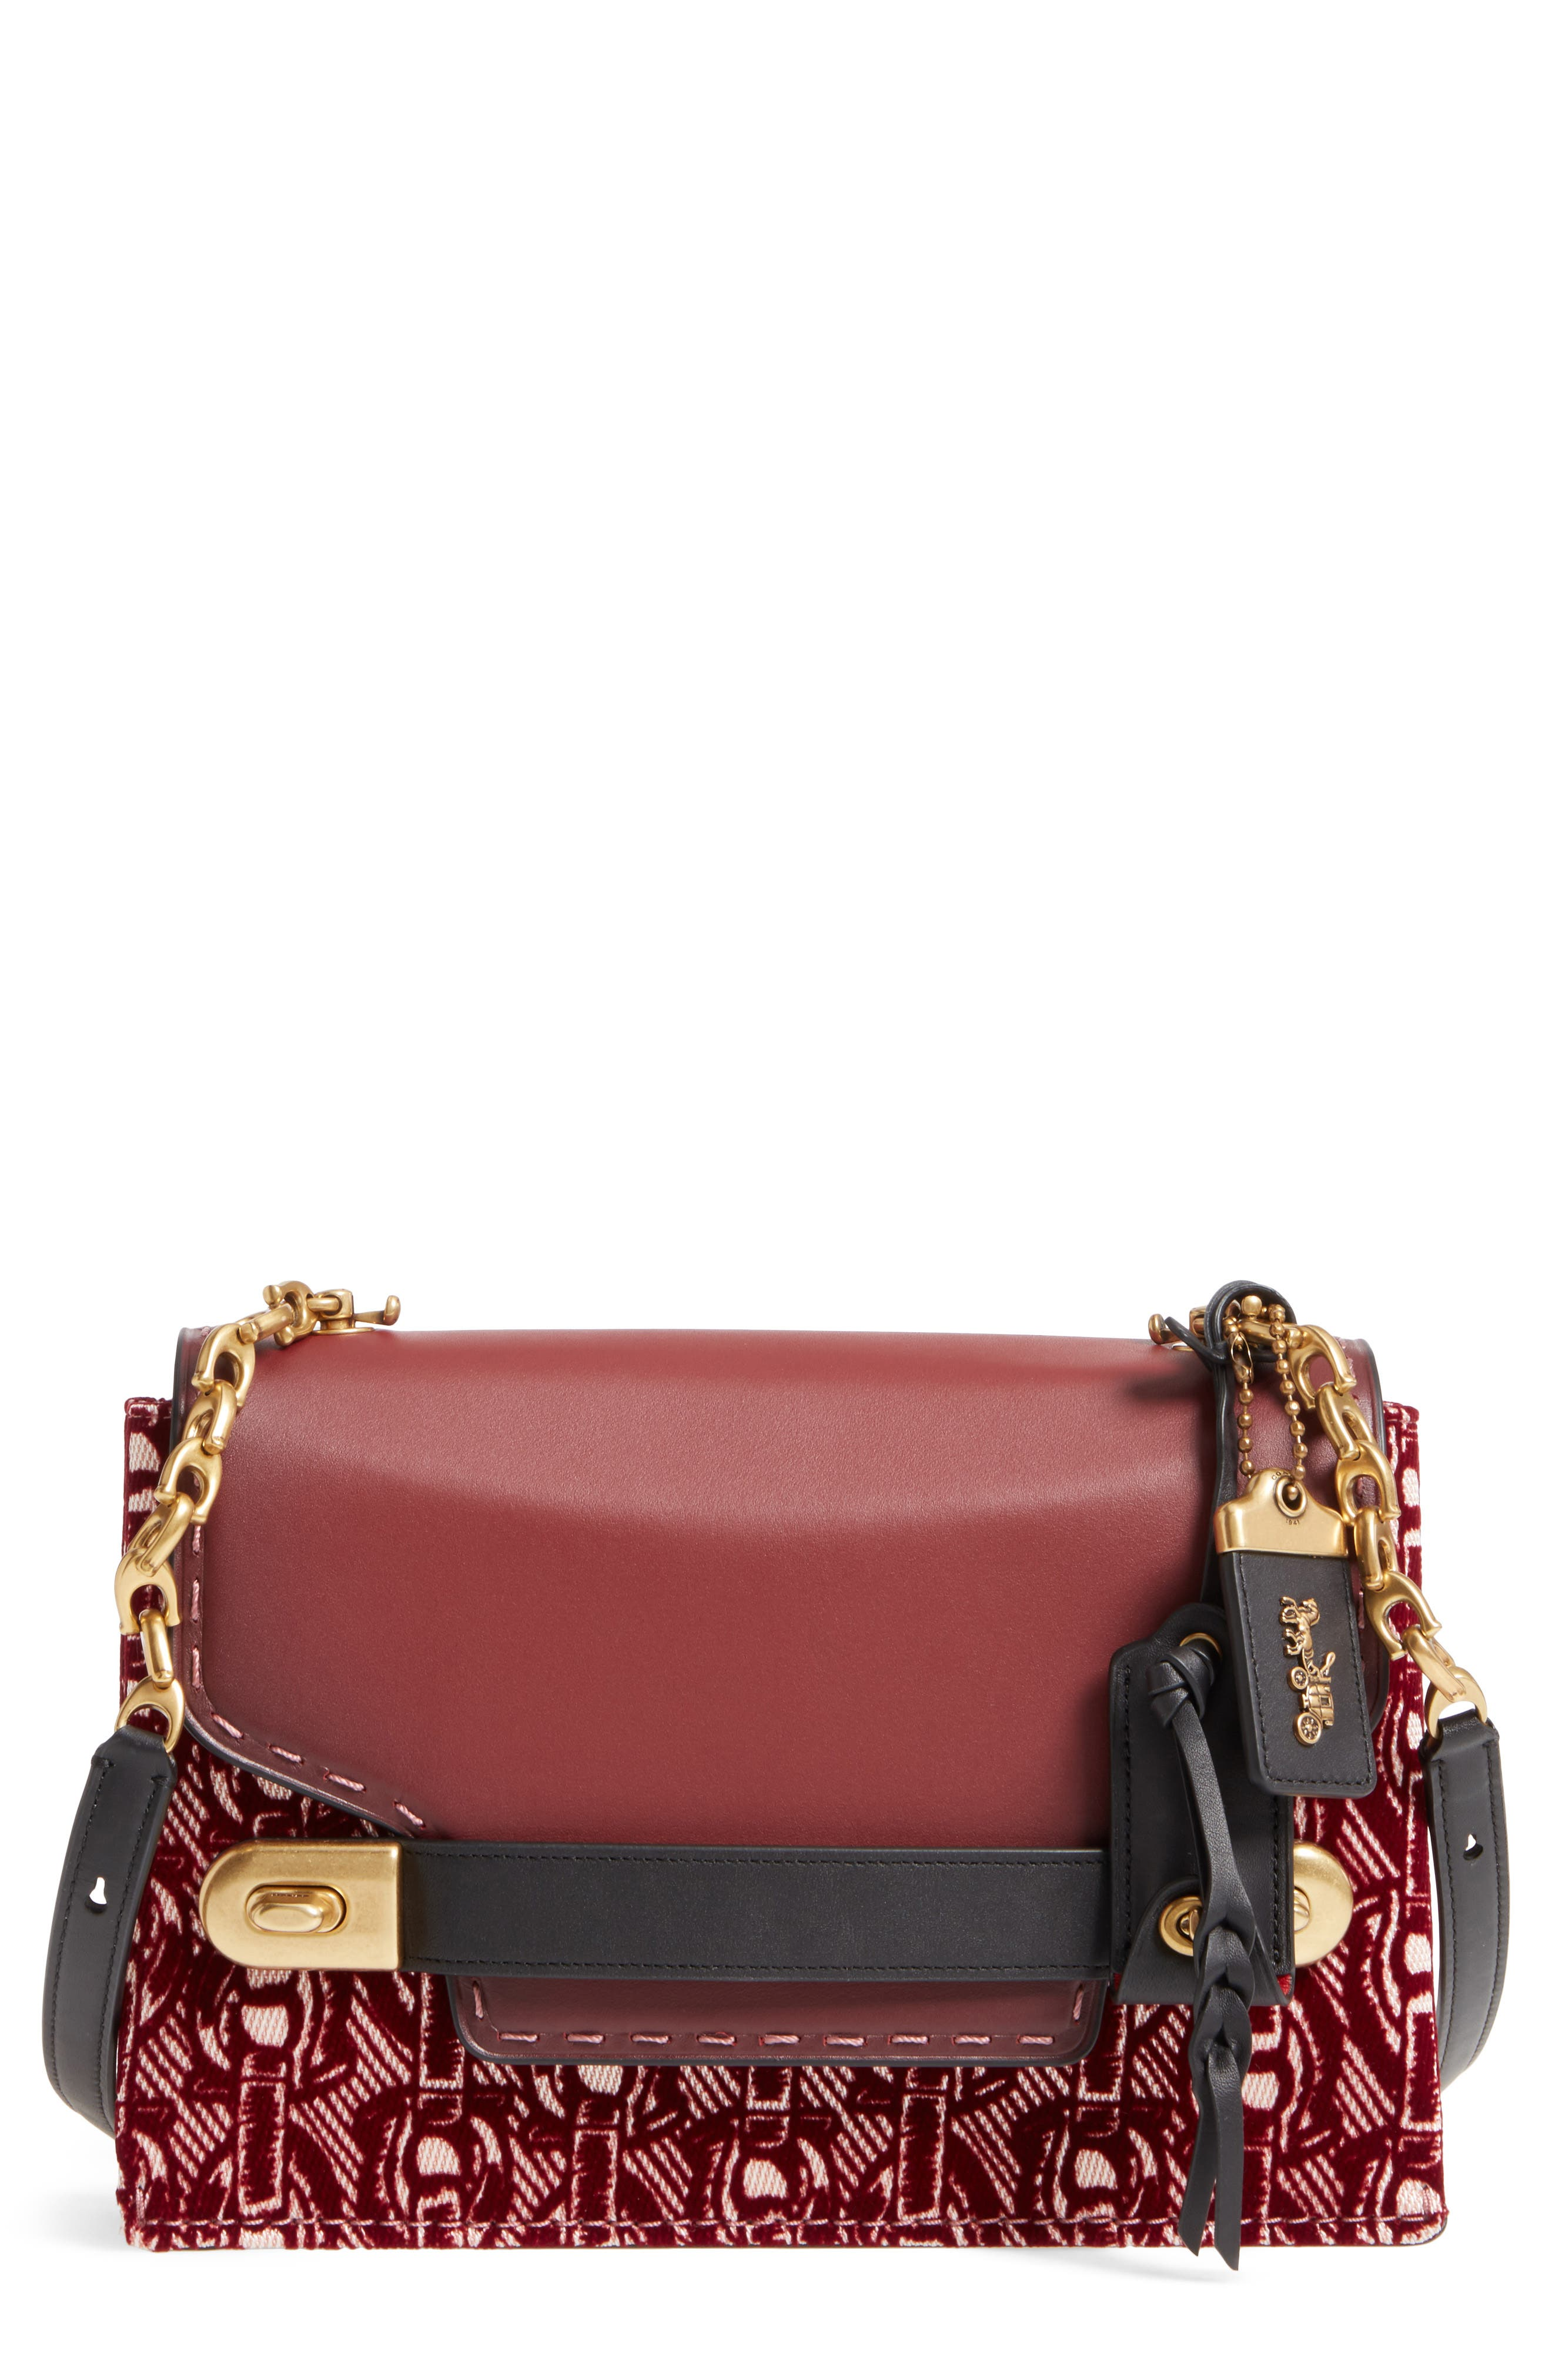 Swagger Chain Leather Crossbody Bag,                         Main,                         color, 930